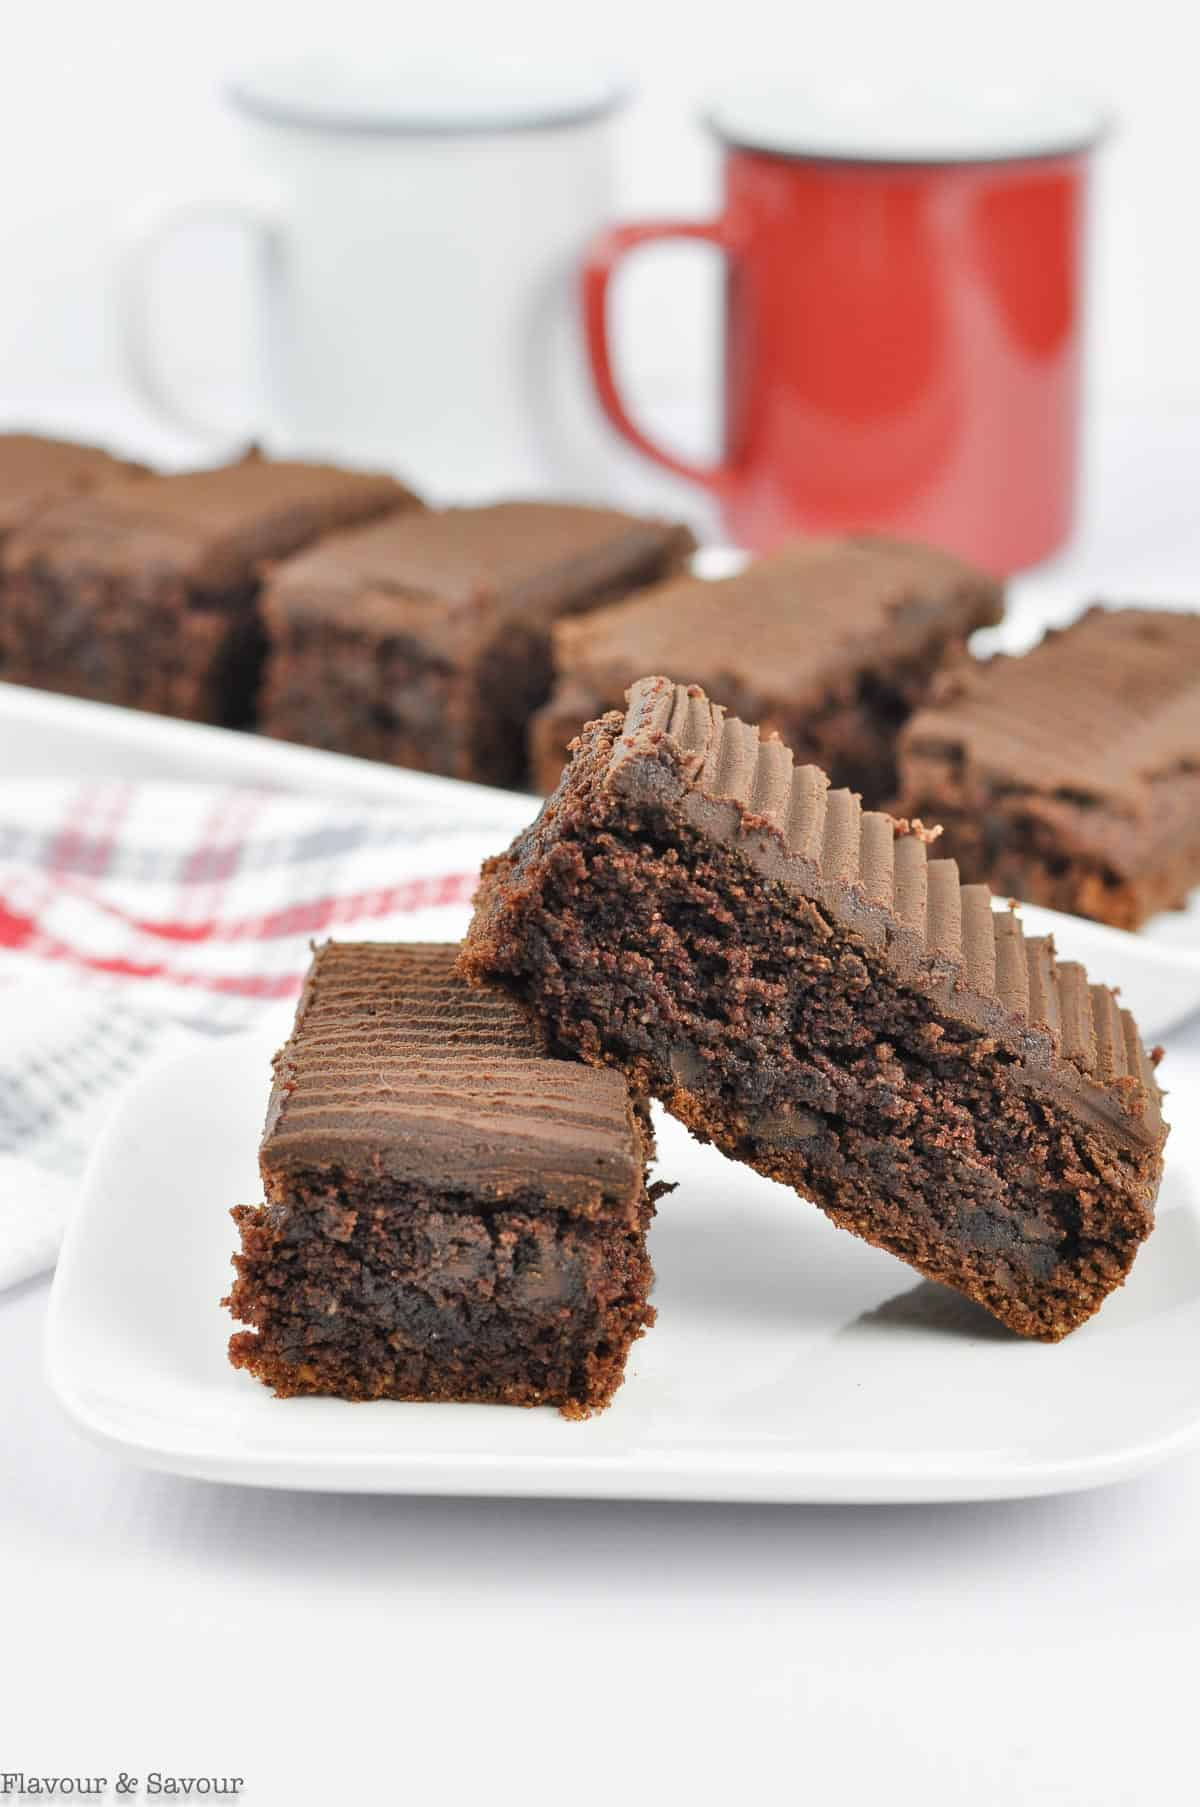 Two bars of Brownies on a plate with coffee cups in the background.